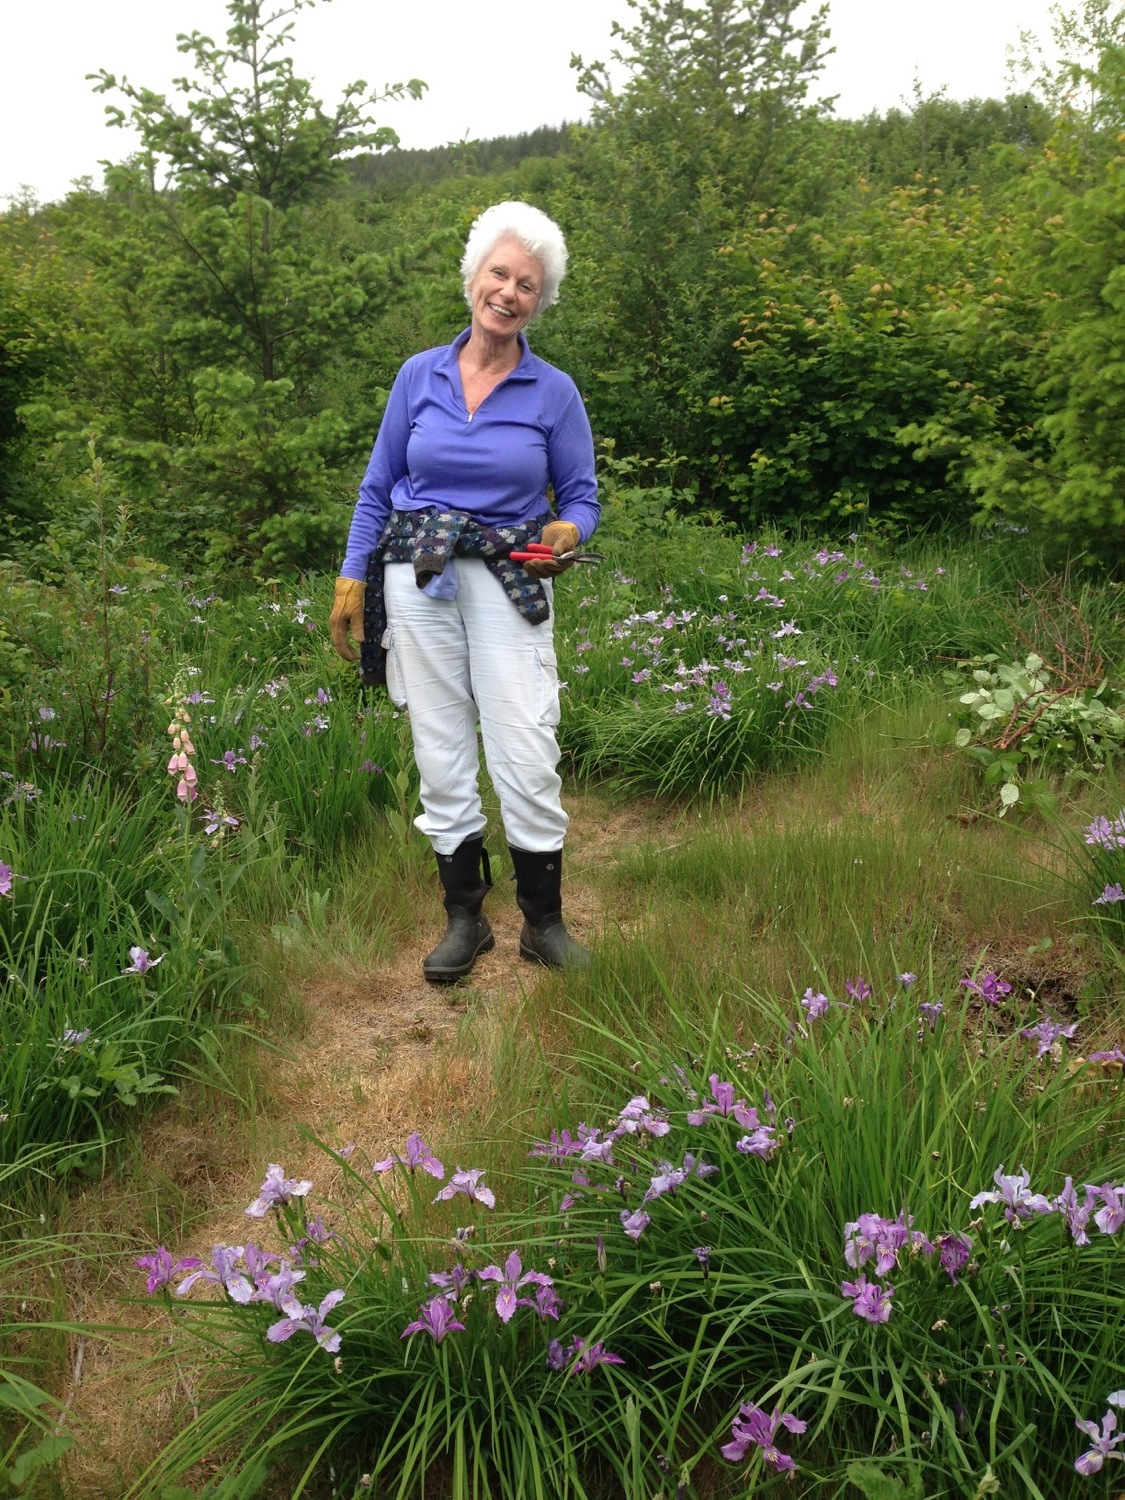 the_woods_2018_Mom_Elske_outstanding_in_her_field_of_iris.jpg